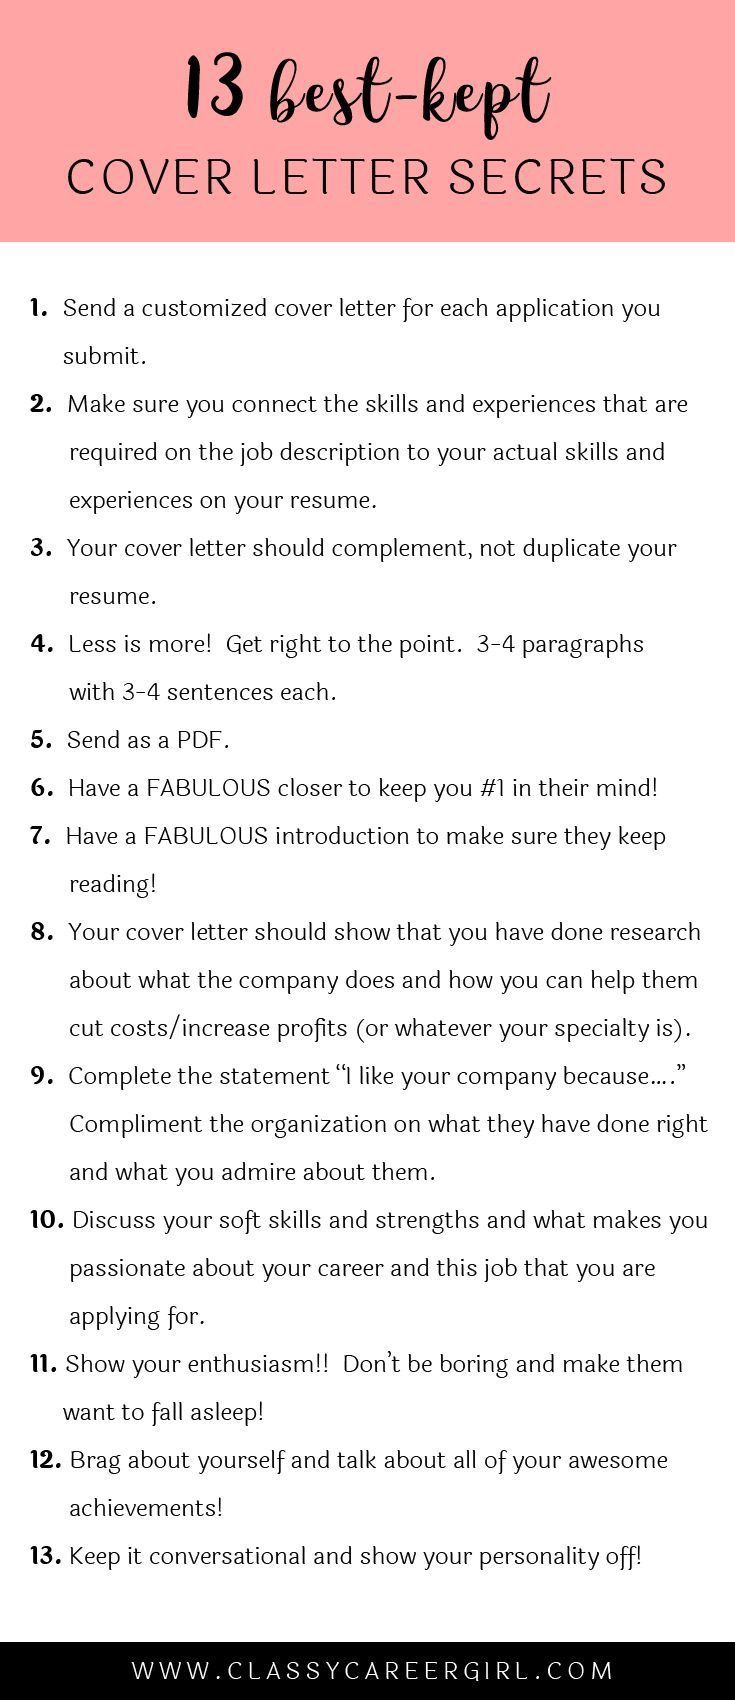 A Cover Letter For A Job Amazing Cover Letter Secrets  Professionalism  Pinterest  Adulting Job .